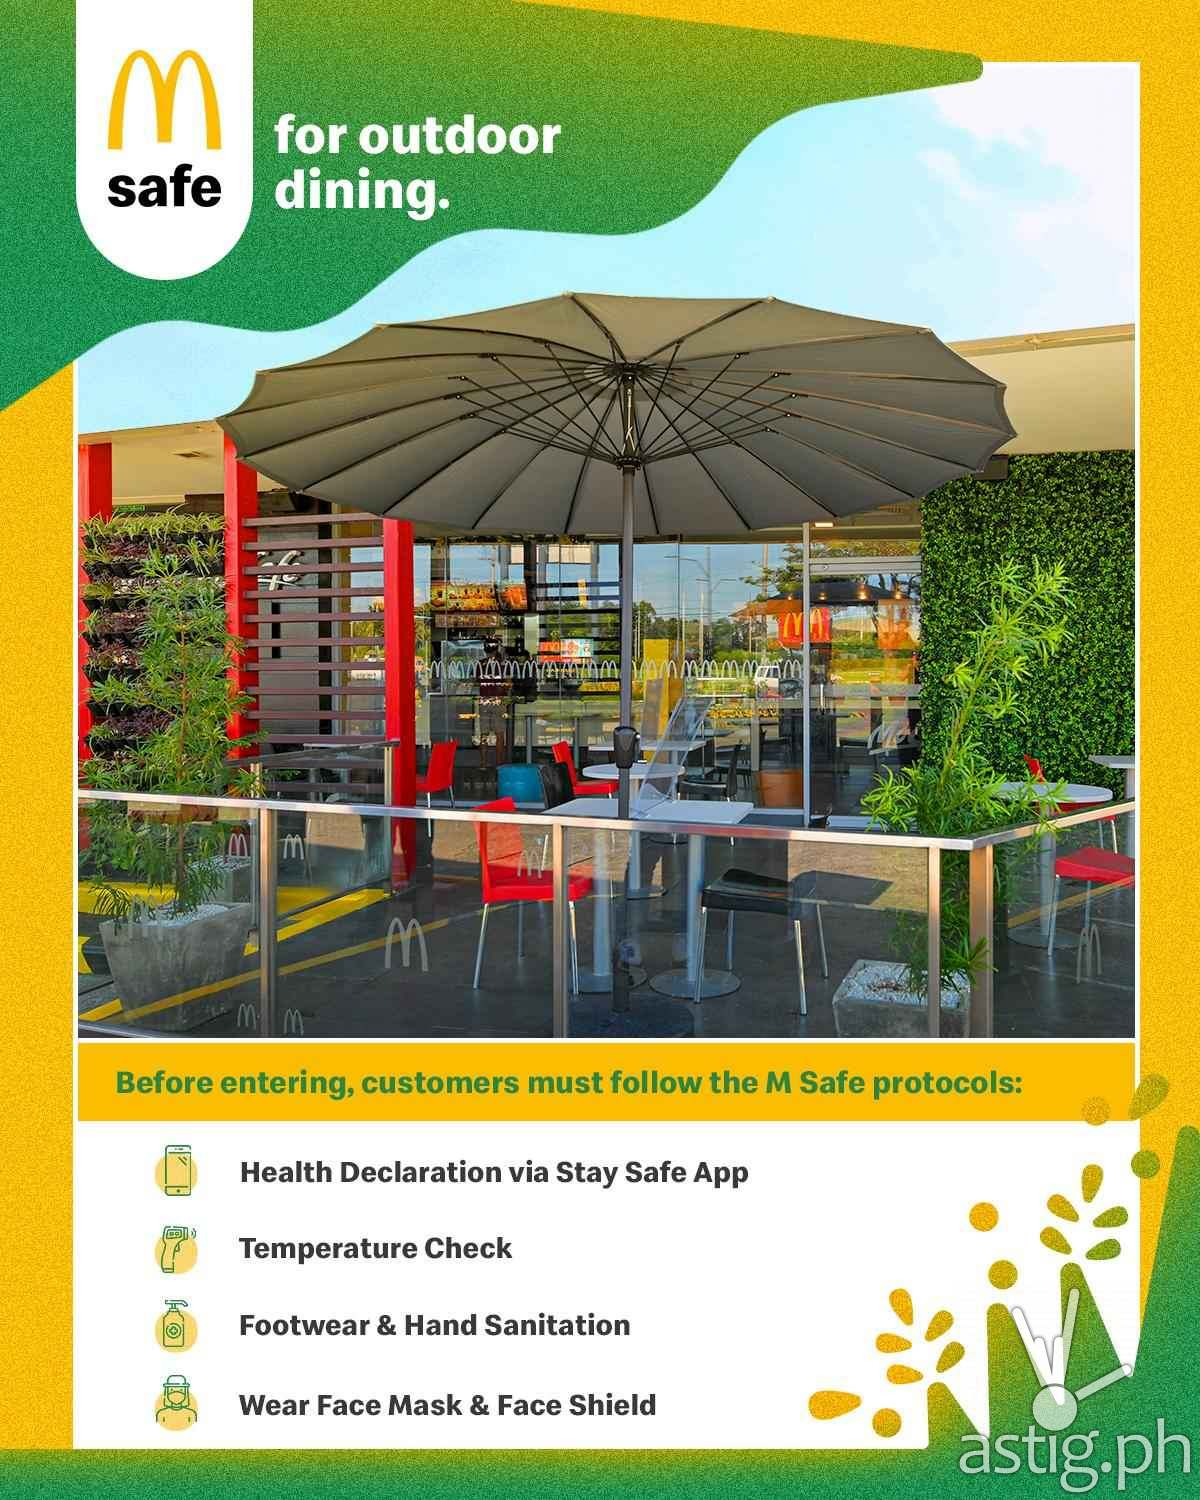 Customers can now safely enjoy their McDonald's favorites in a restaurant near their homes during this MECQ period with more outdoor dining options in Metro Manila, Cavite, Rizal, Bulacan, and Laguna, and in the rest of the country.